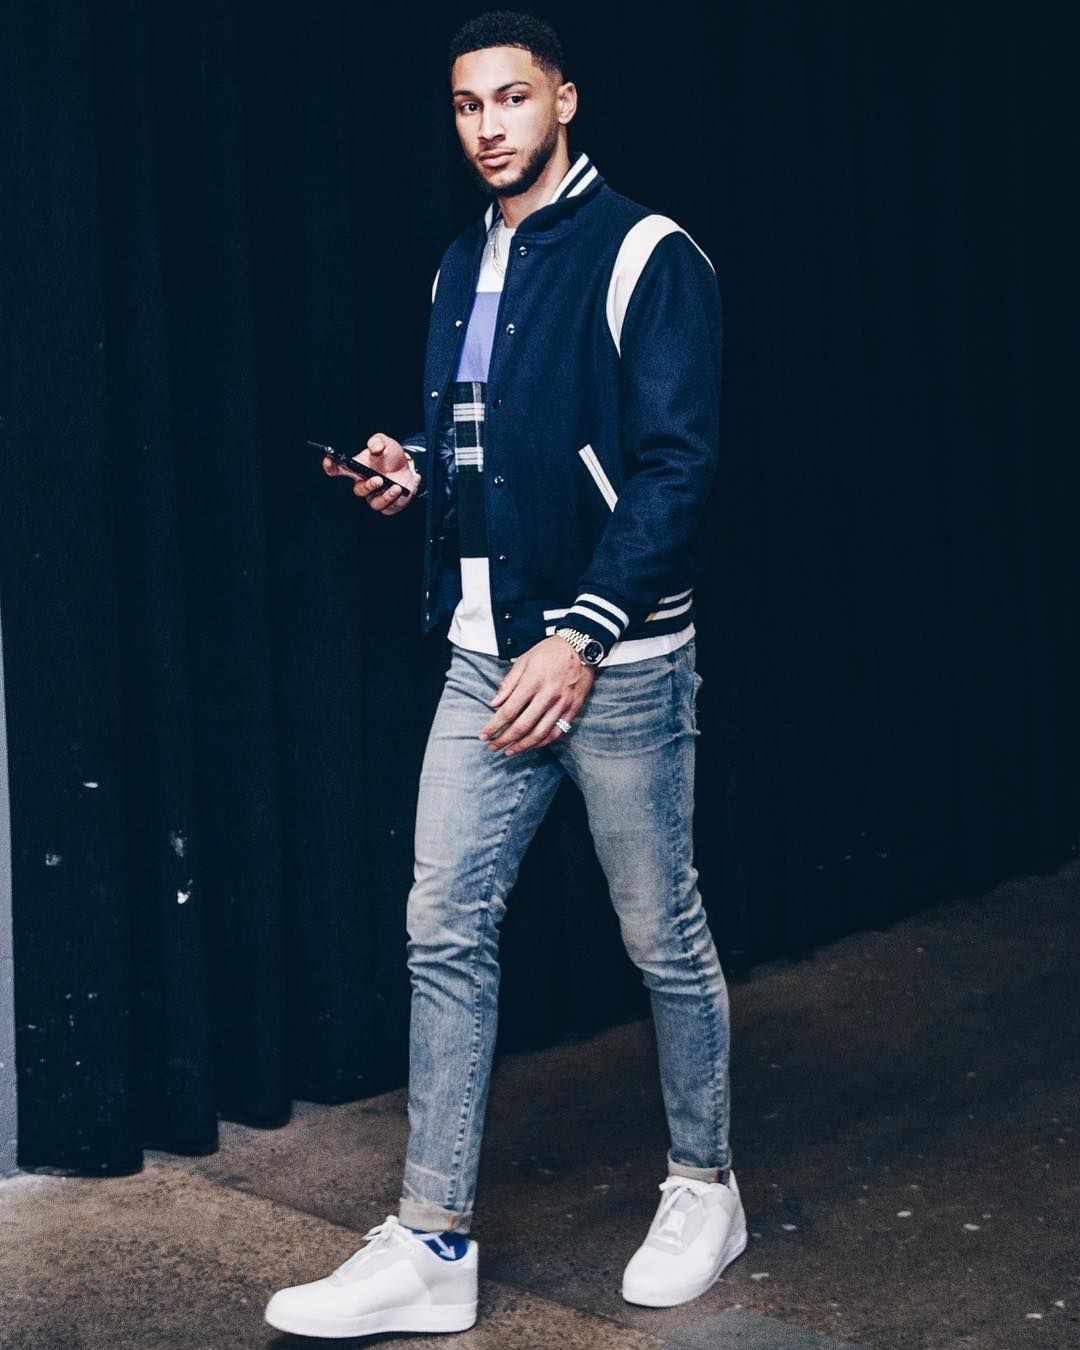 Bensimmons Wears A Goldenbearsportswear Jacket Acoldwall X Nike Af1 Sneakers Off White Socks For Nba Outfit Nba Fashion Mens Fashion Casual Outfits